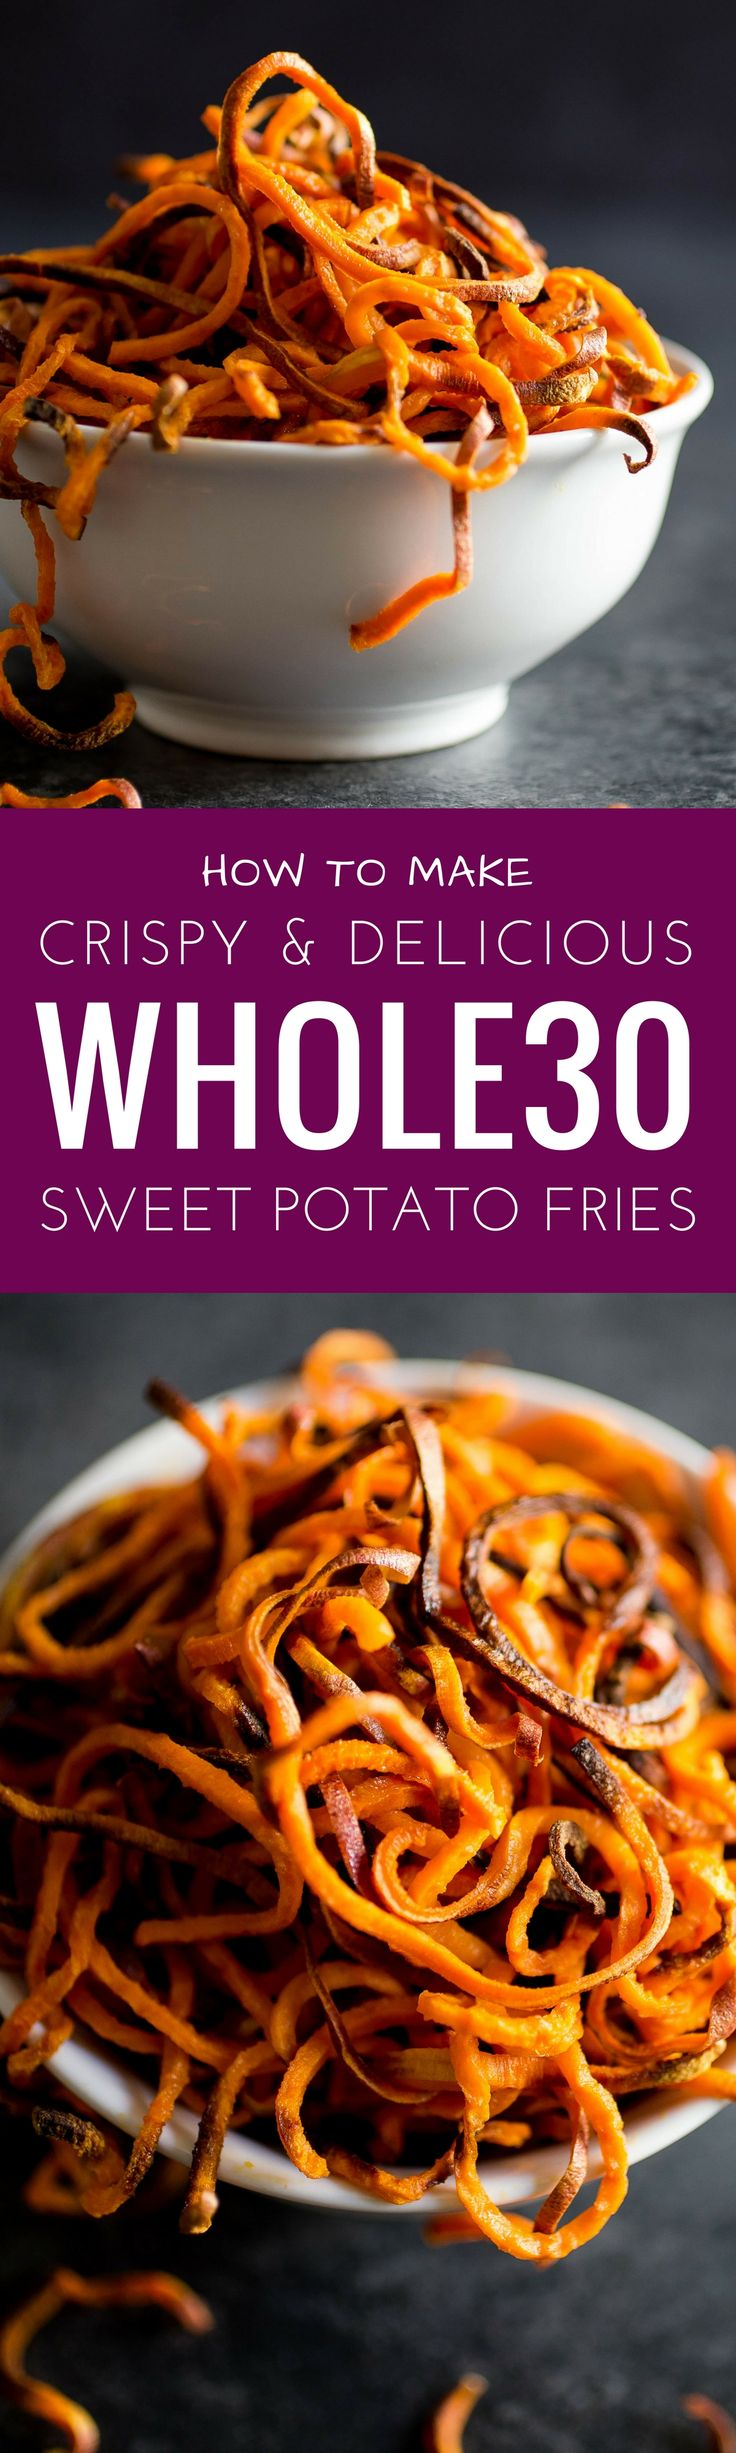 Best Paleo Sweet potato fries. Spiralized sweet potato fries that are made with all clean eating ingredients. Make as a healthy side dish for a burger or other easy dinner. Pin this healthy sweet potato fries recipe to make later!